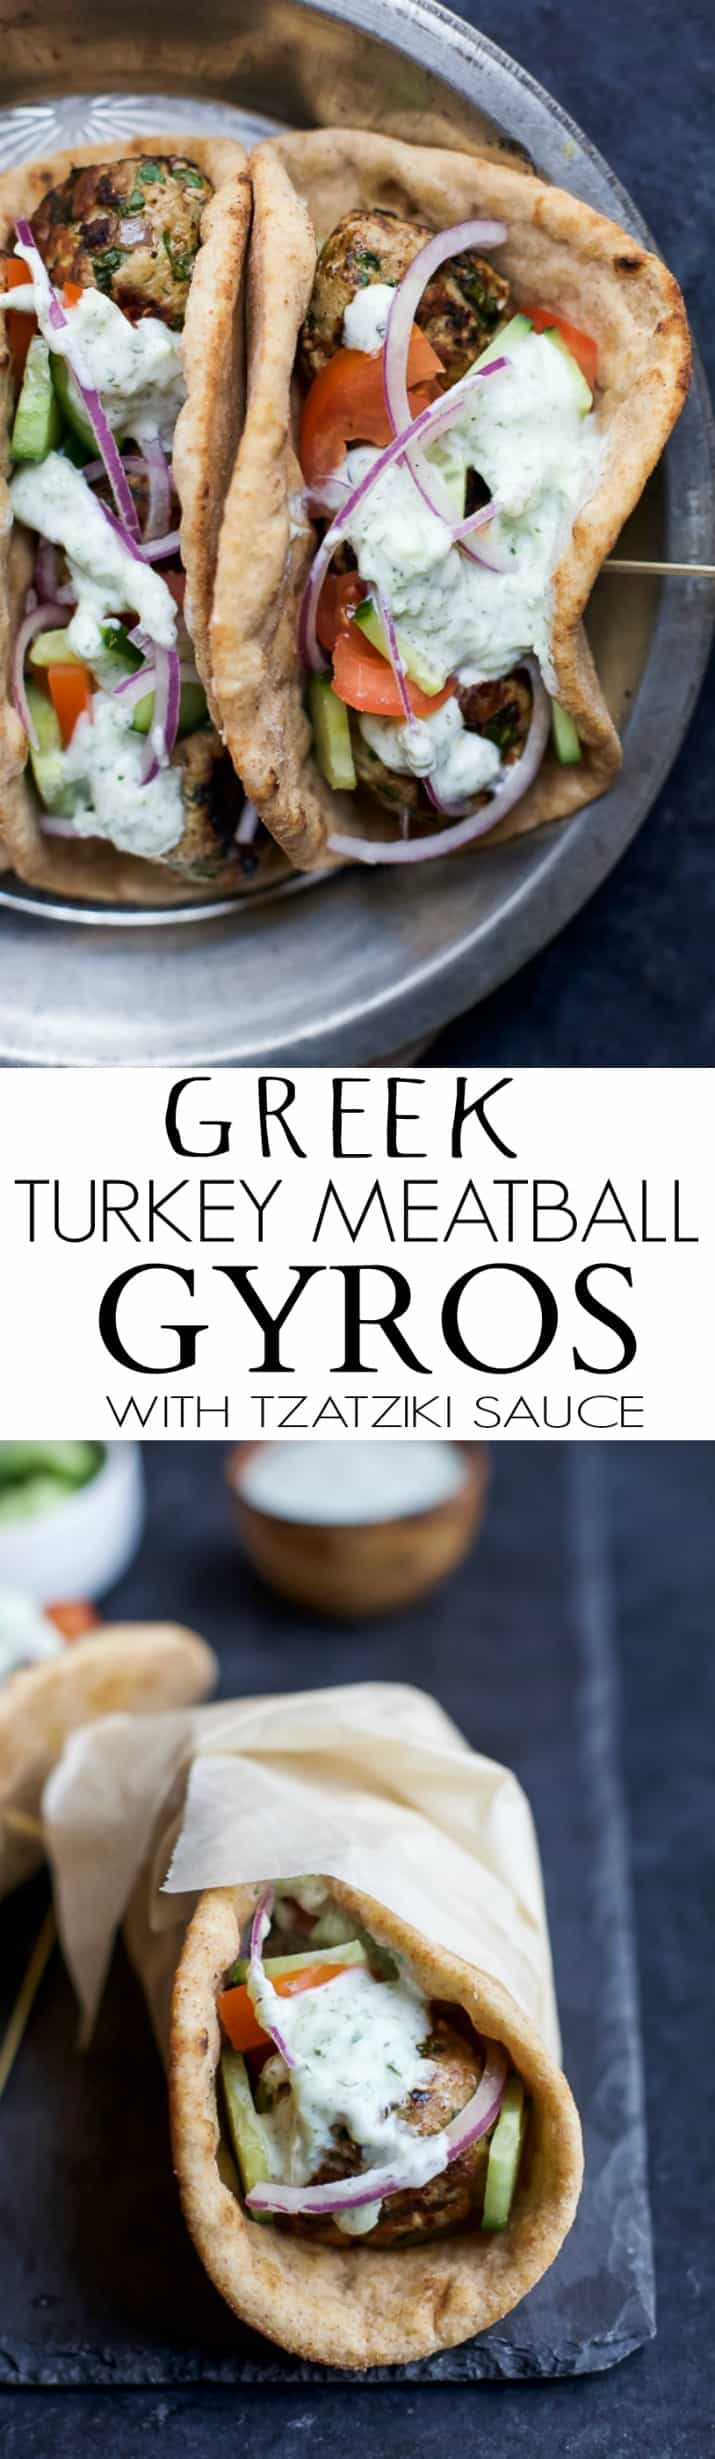 Recipe collage for Greek Turkey Meatball Gyros with Tzatziki Sauce